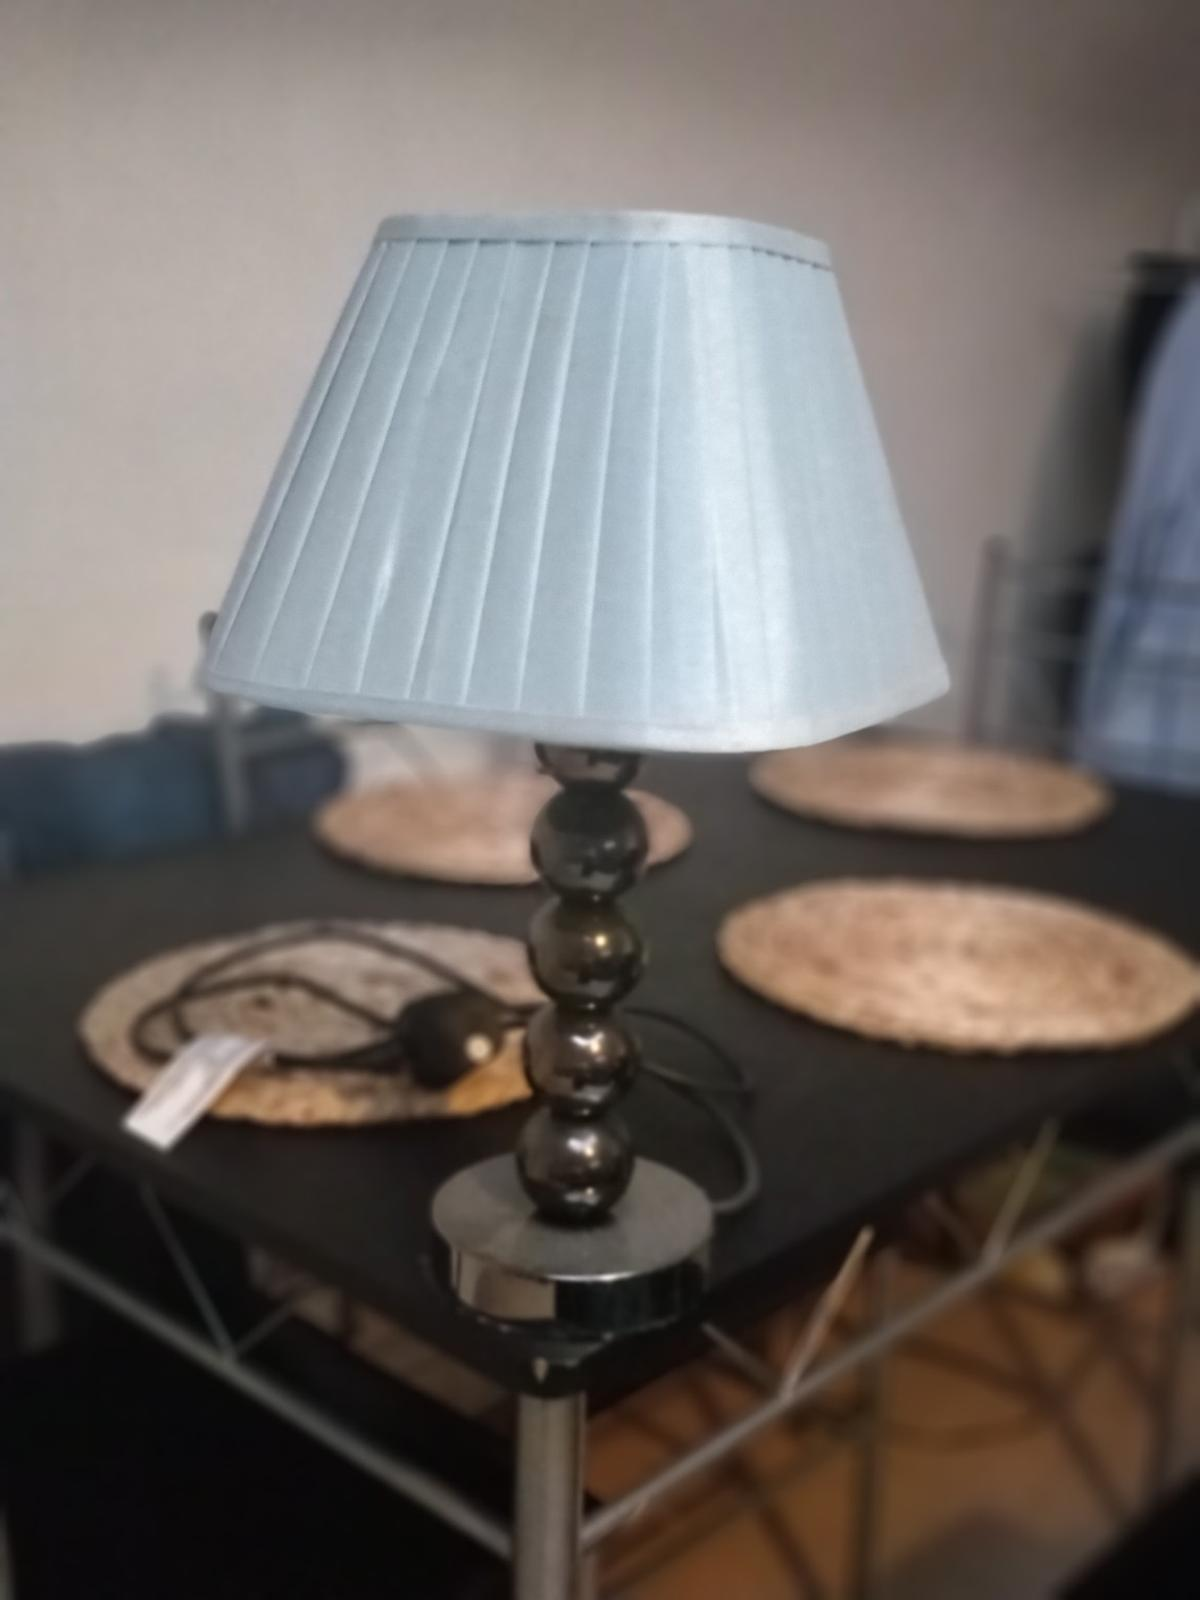 home base lamp with a teal, pleated shade. in excellent condition, only selling due to no use for anymore. collect only.